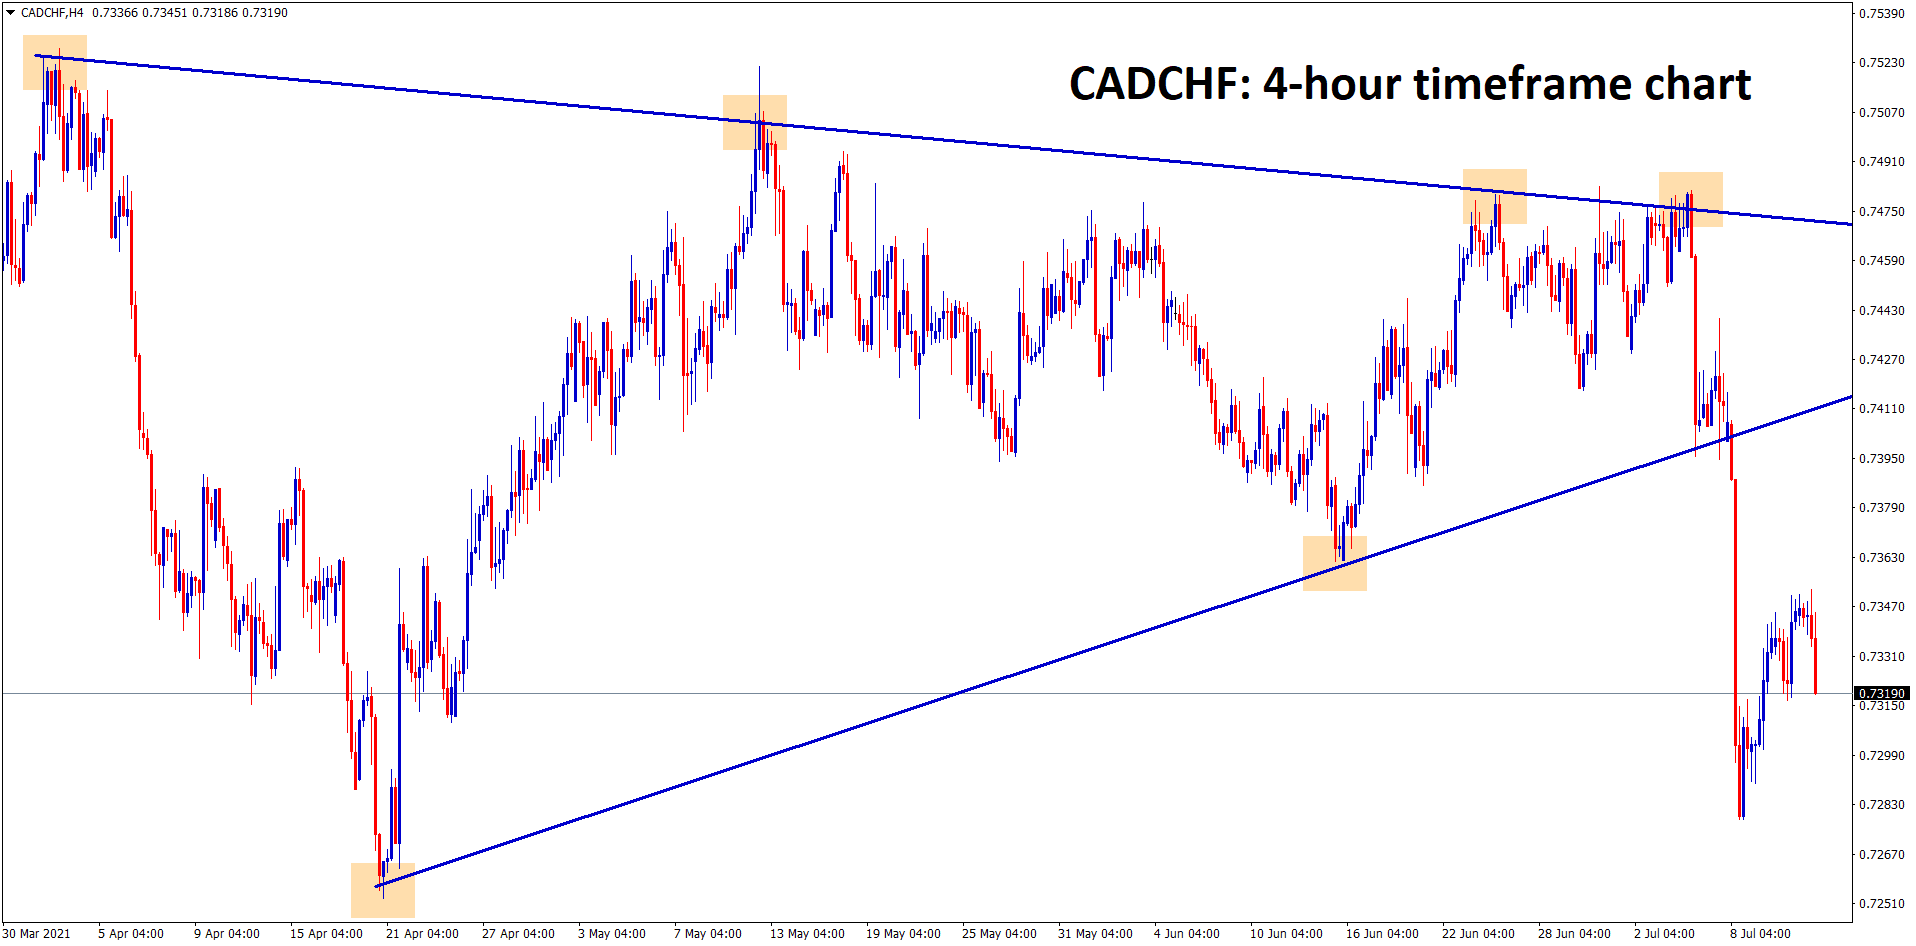 CADCHF has broken the bottom of the symmetrical triangle pattern and its trying to continue the fall.